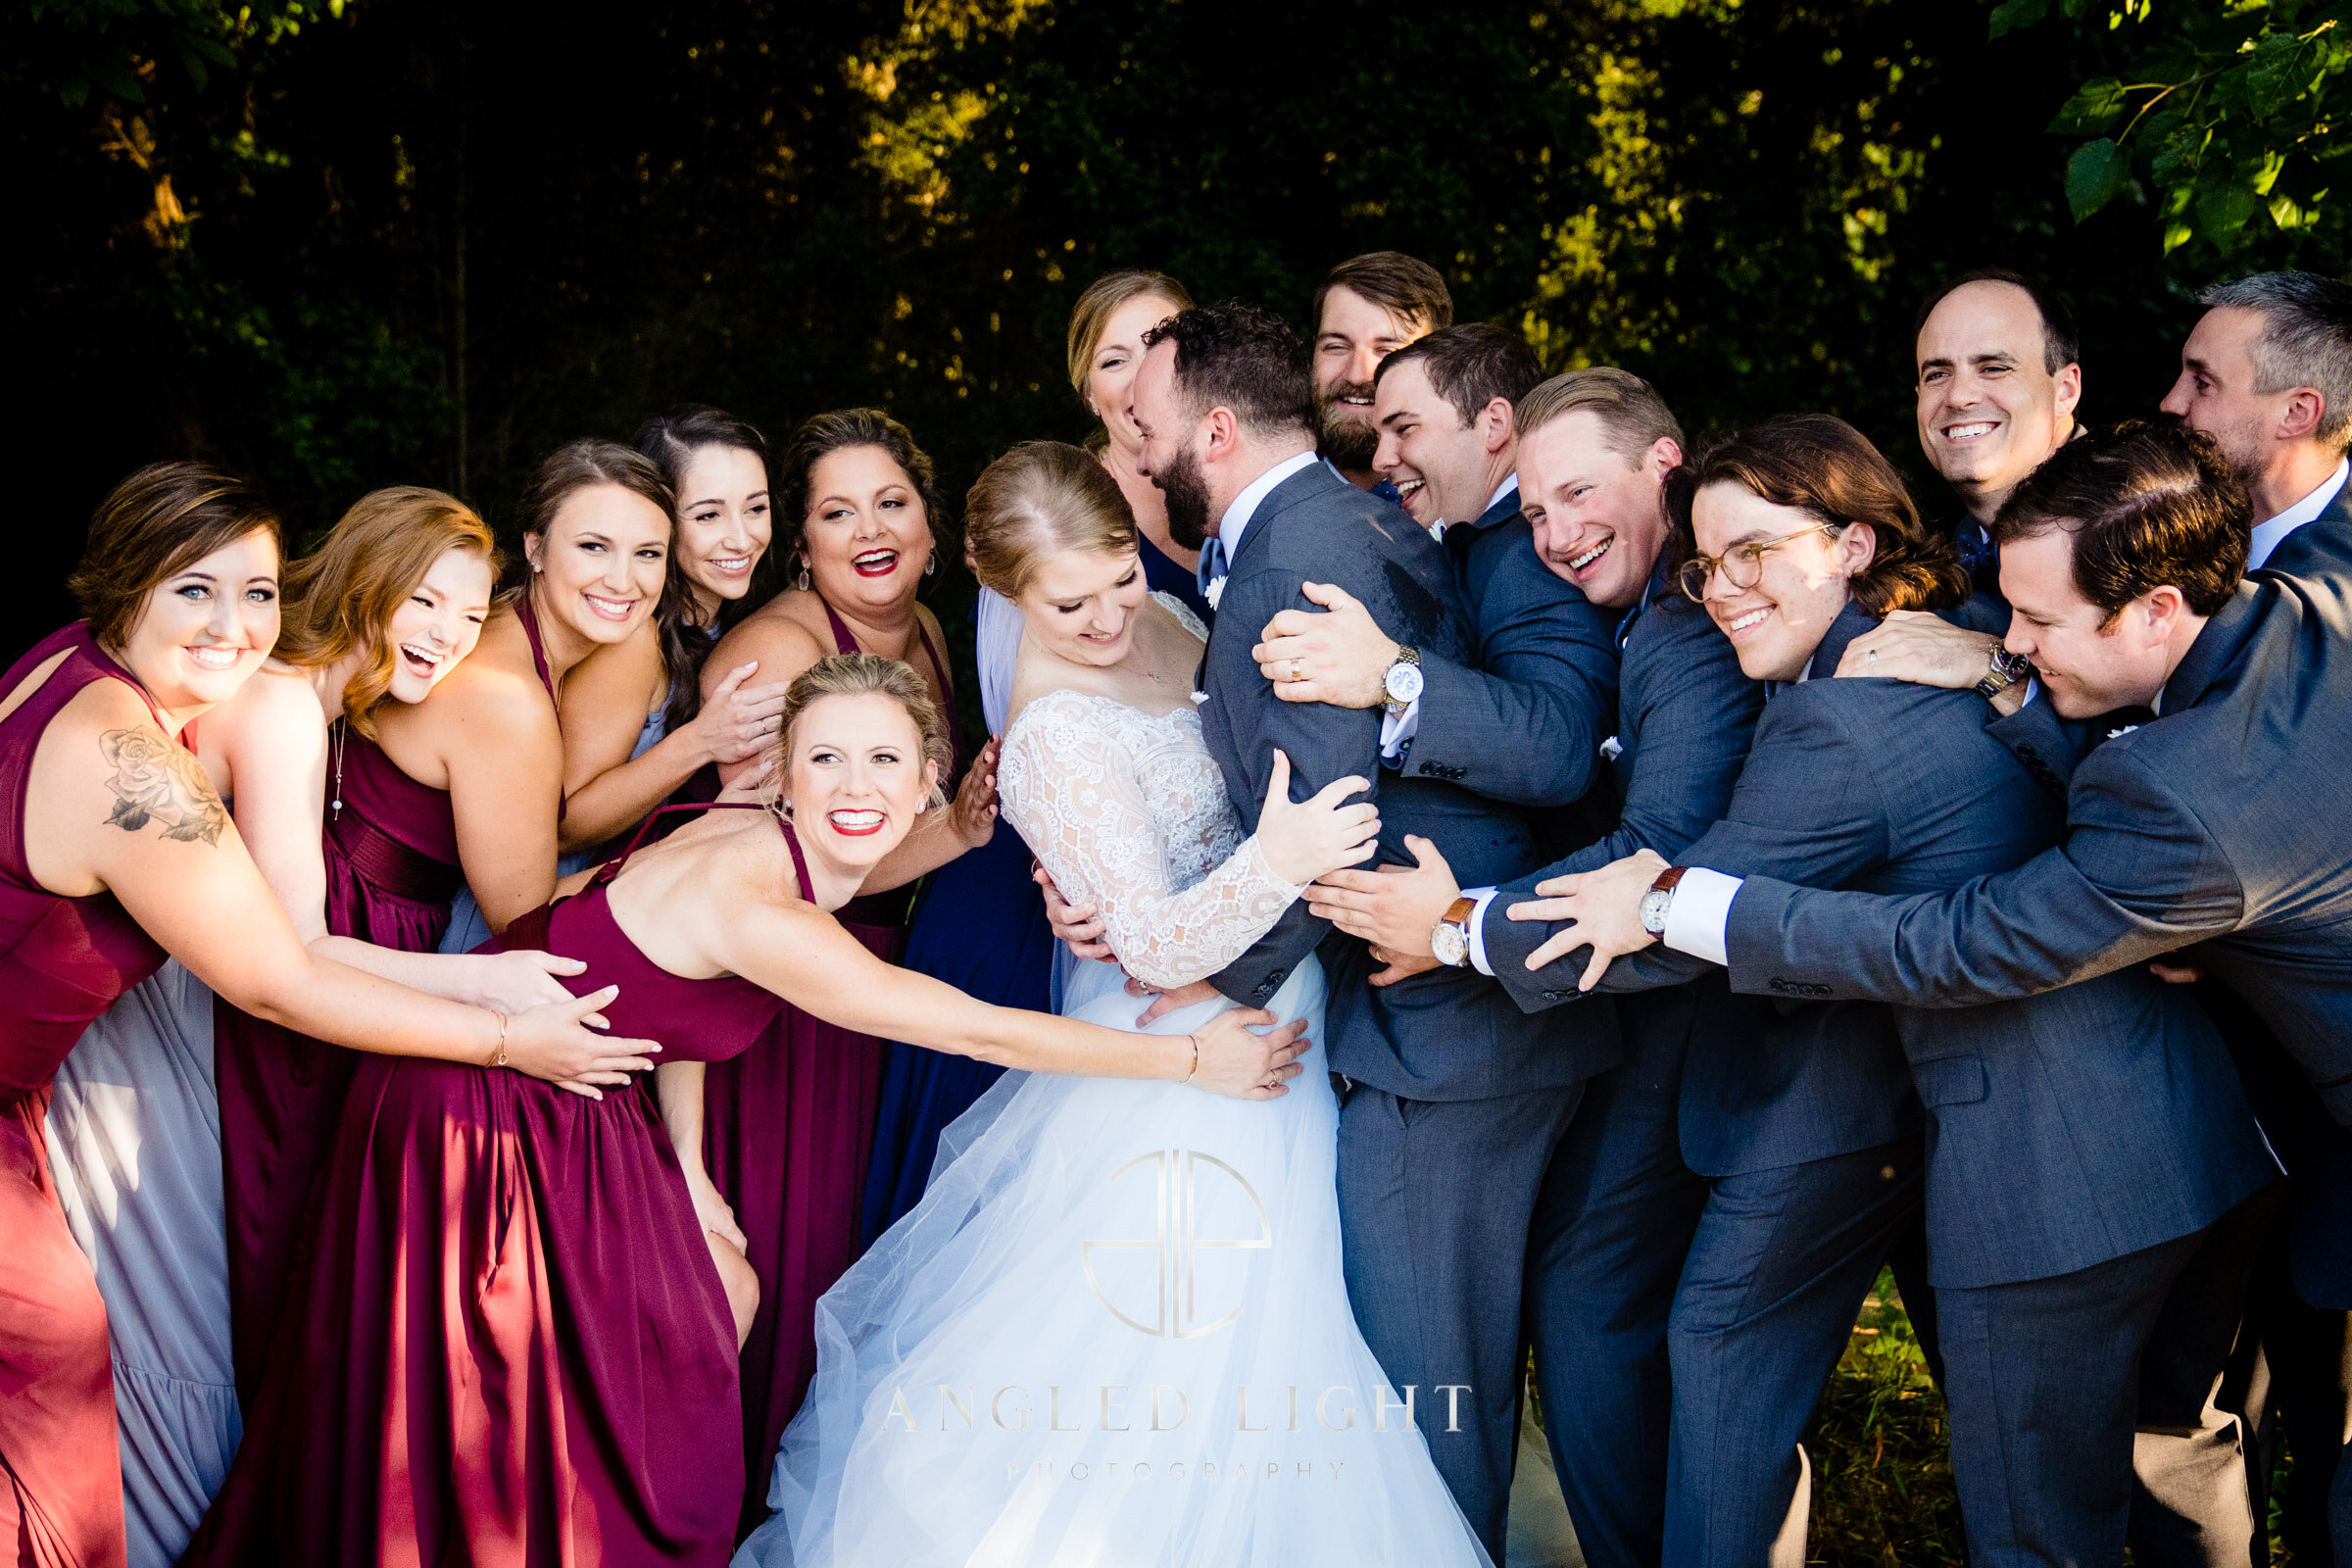 The Wedding Party | Angled Light Photography